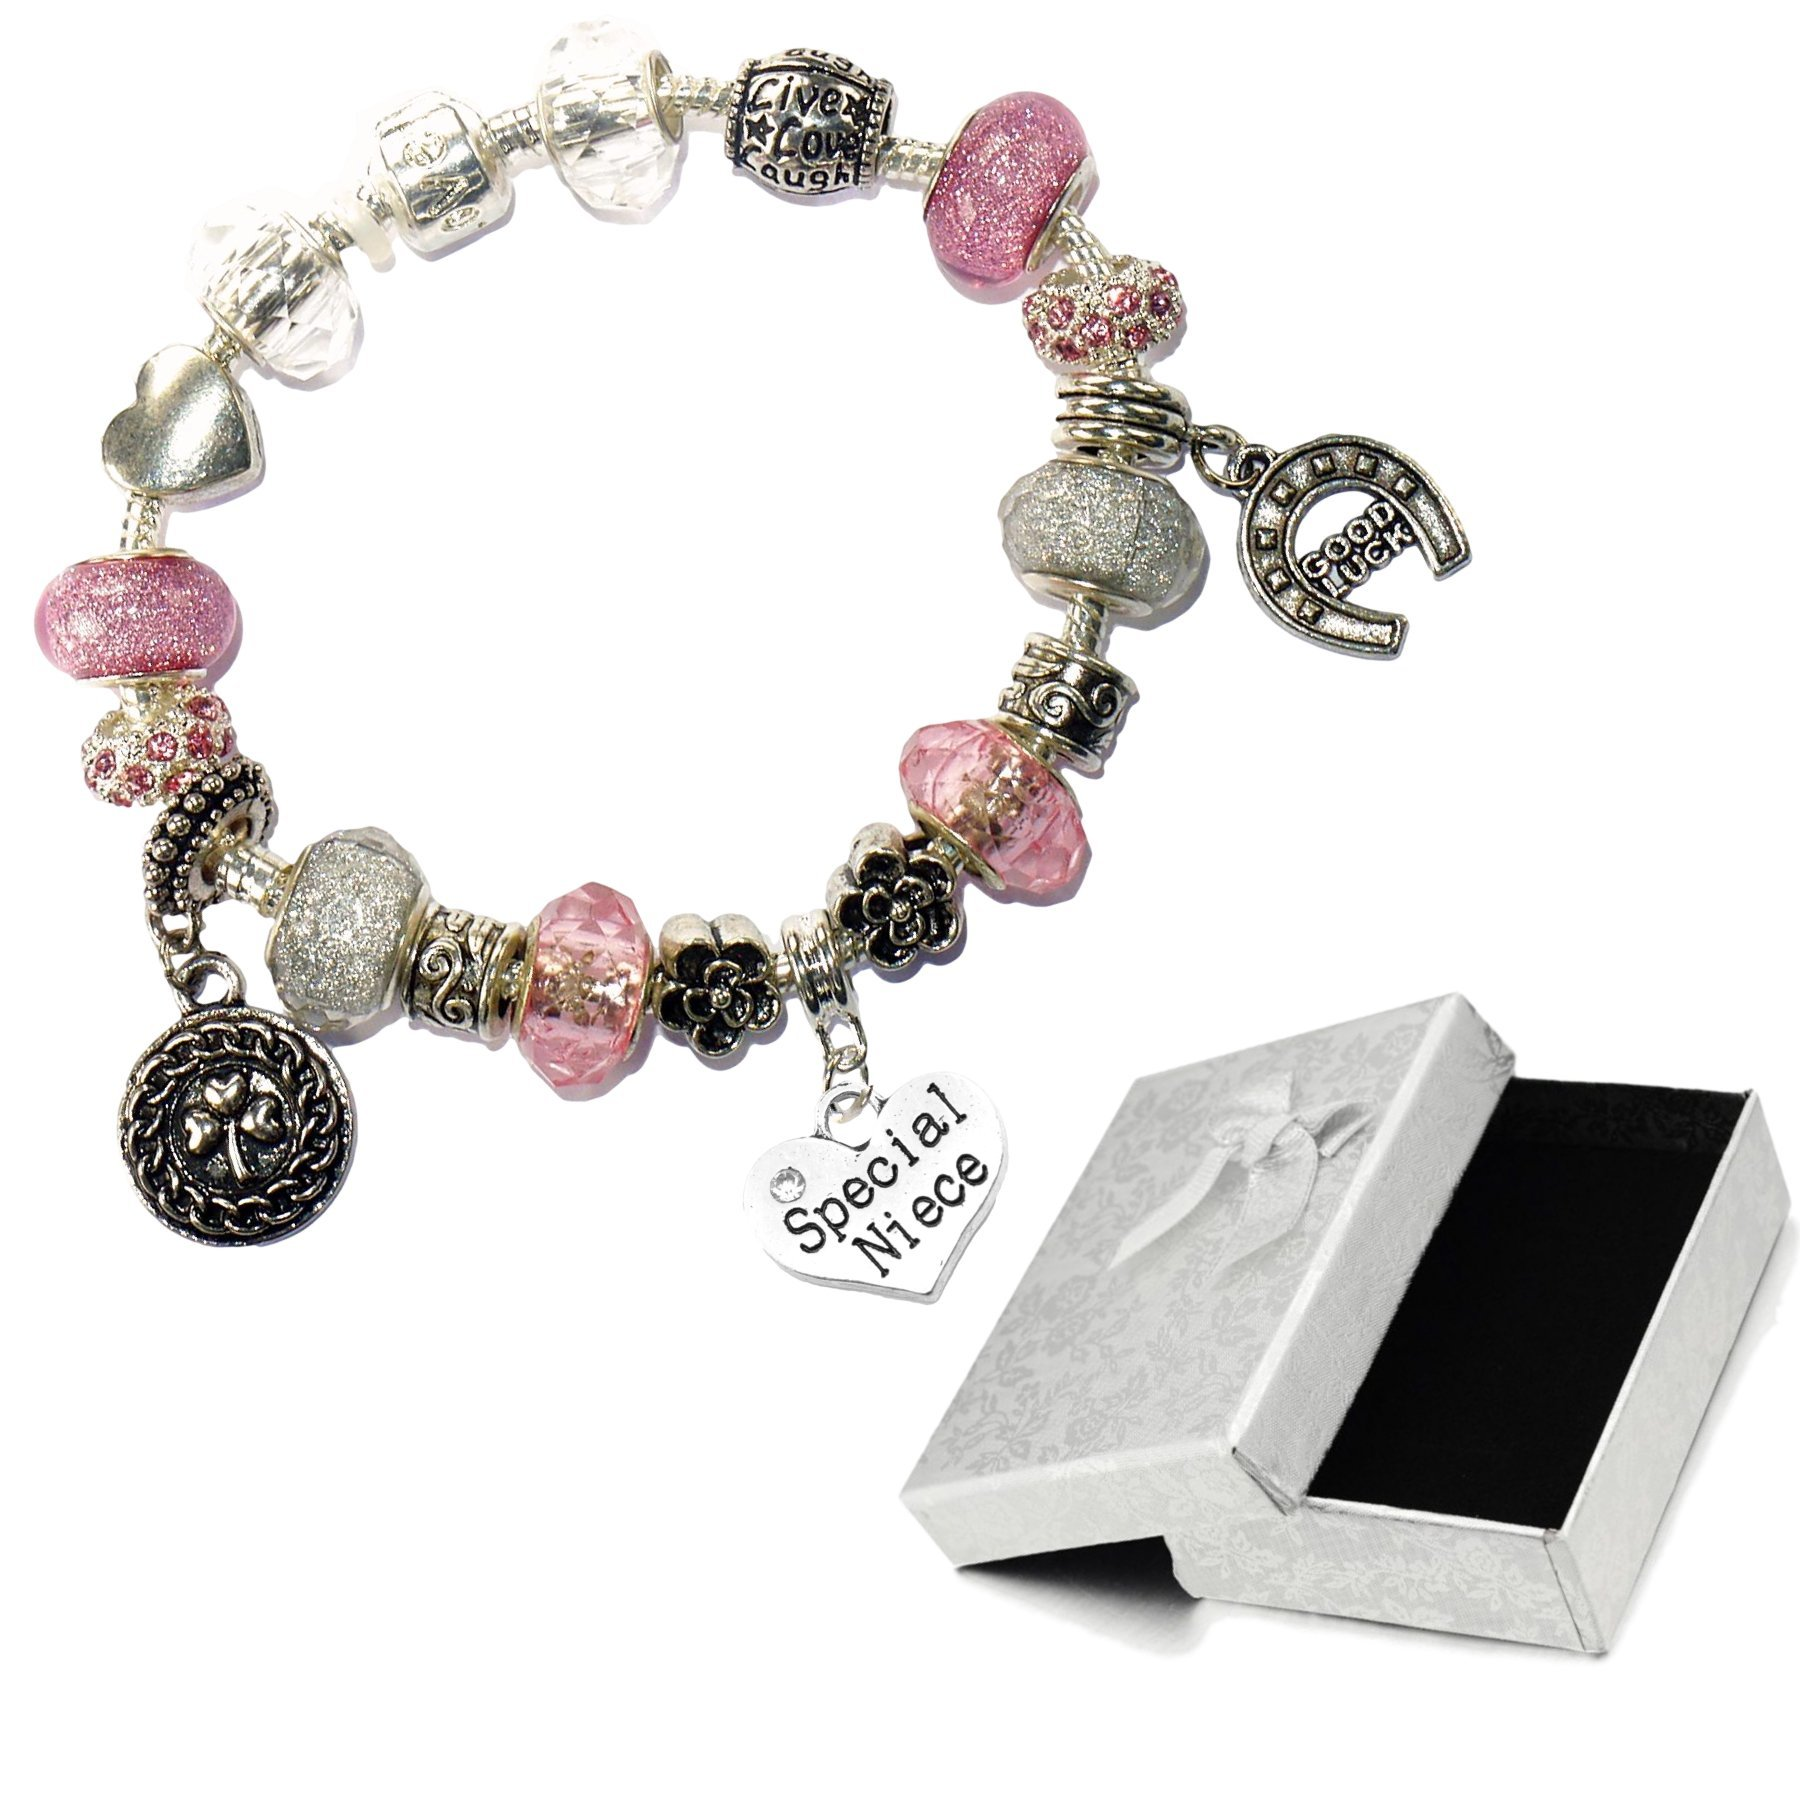 Charm Buddy Special Niece Pink Silver Crystal Good Luck Pandora Style Bracelet With Charms Gift Box